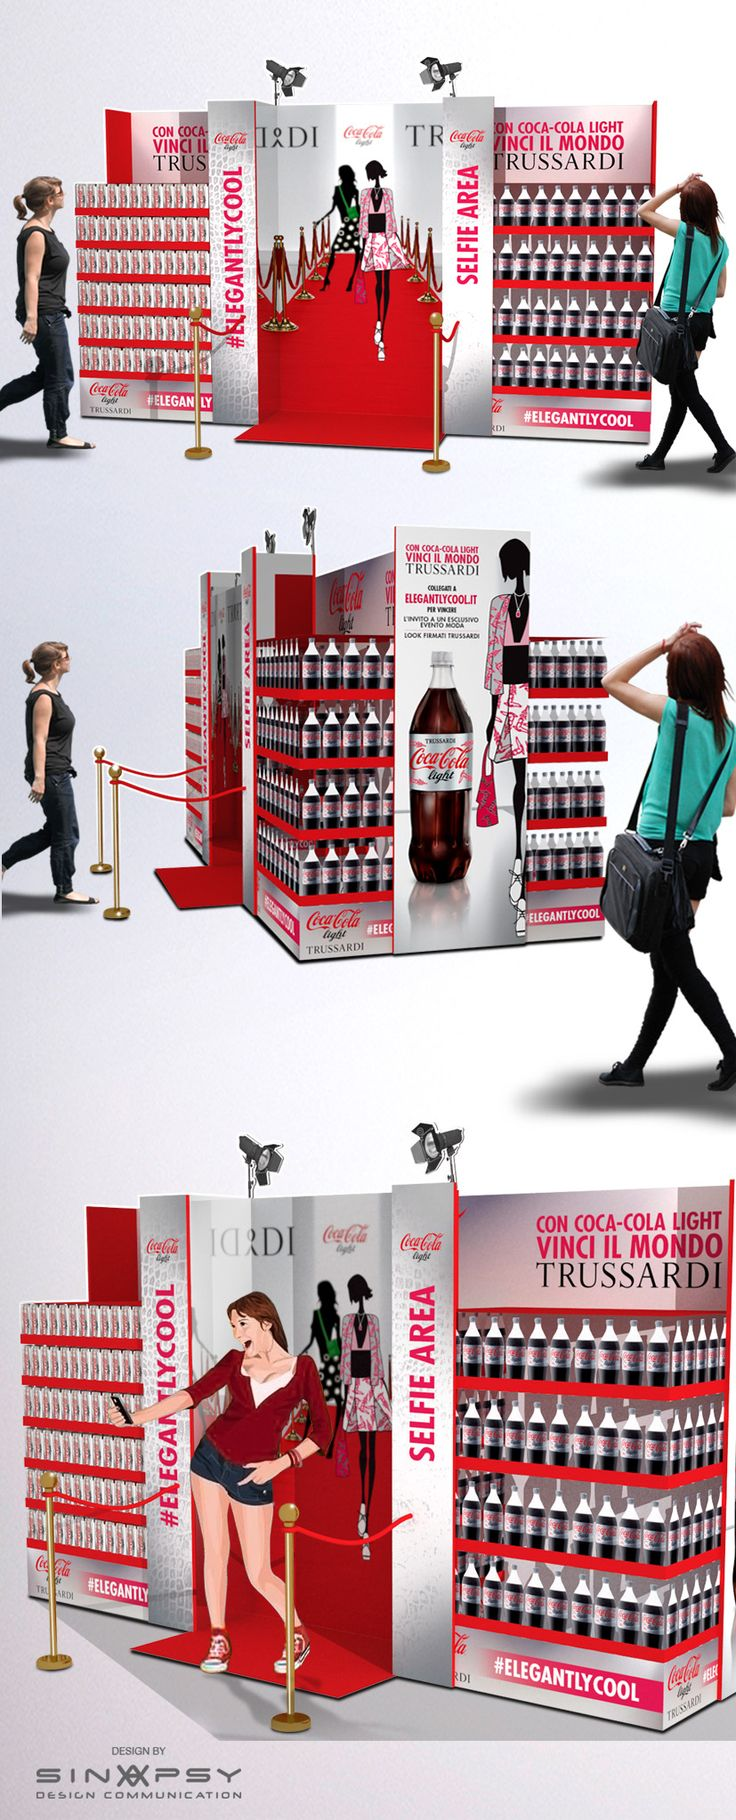 POS Coca-cola light - Trussardi